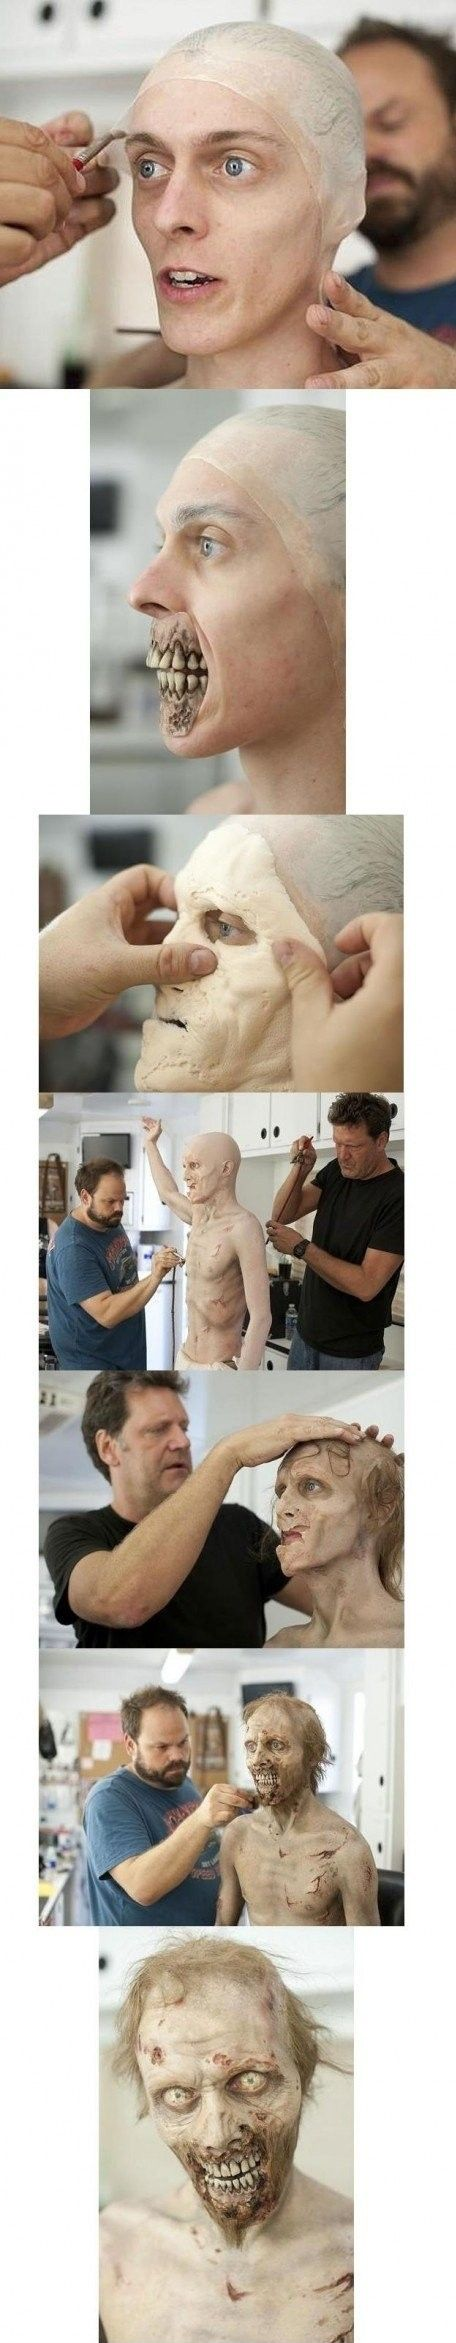 The Making Of a Walking Dead Zombie [Makeup]